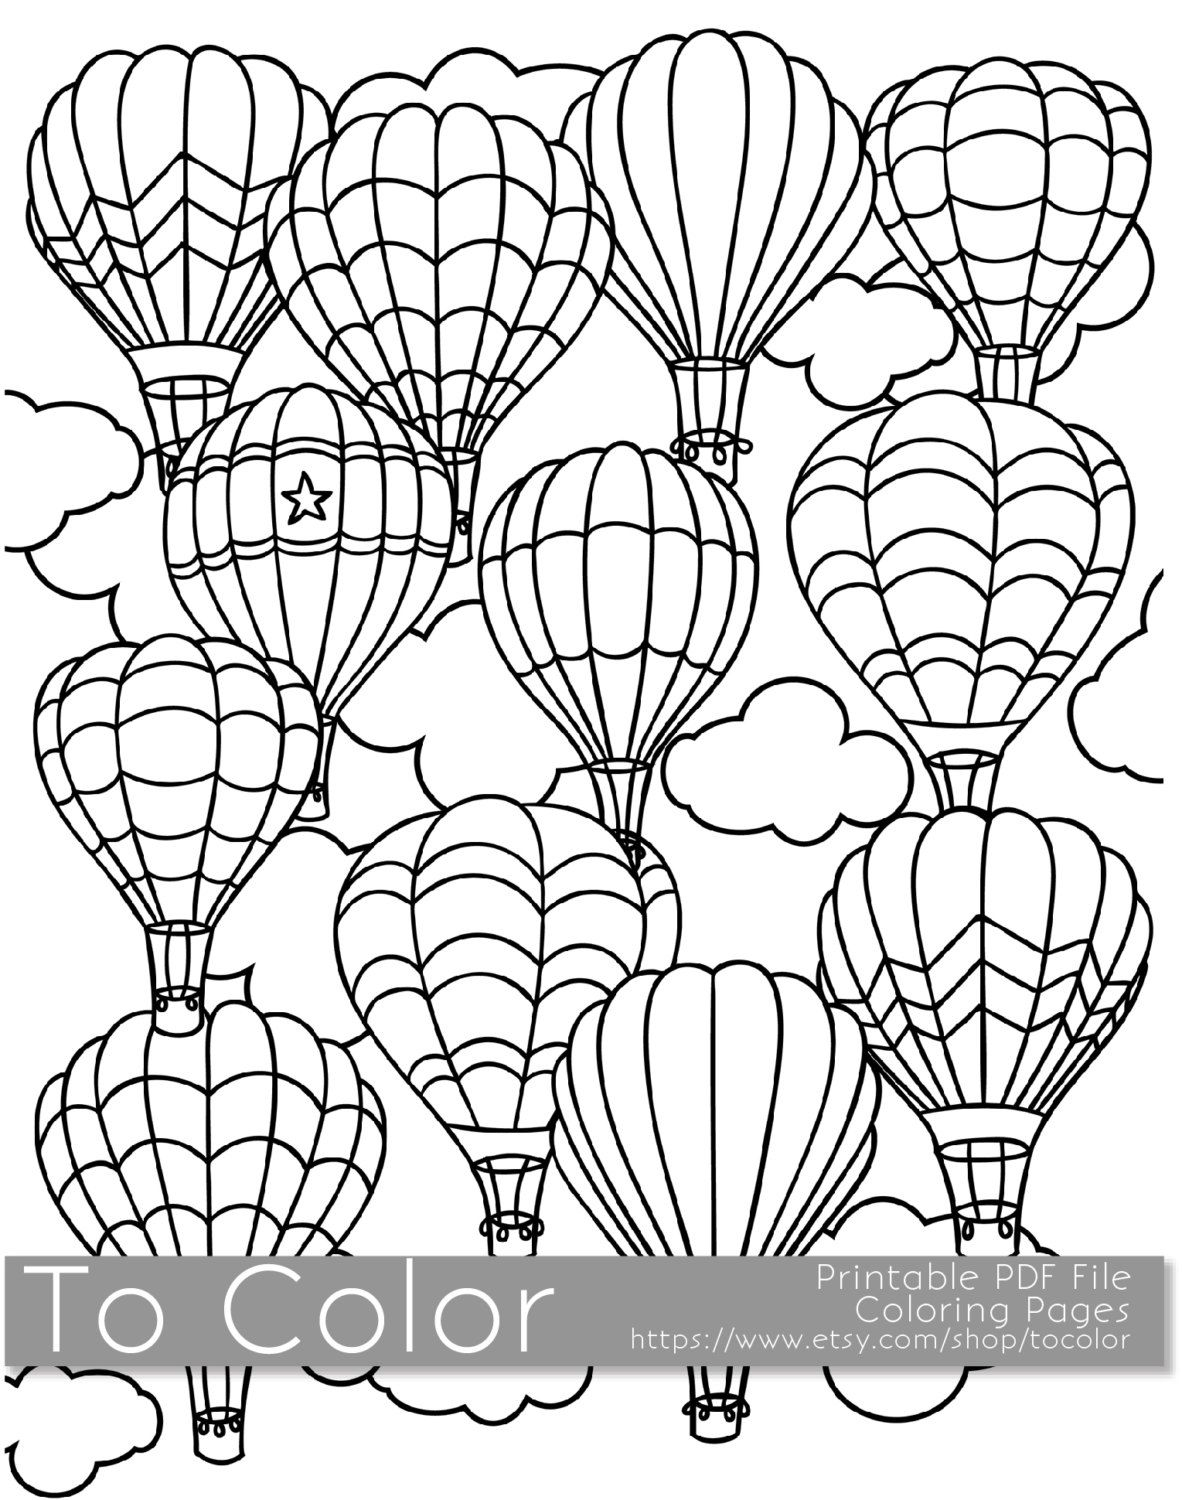 Free Air Balloon Coloring Page Easy Coloring Pages Adult